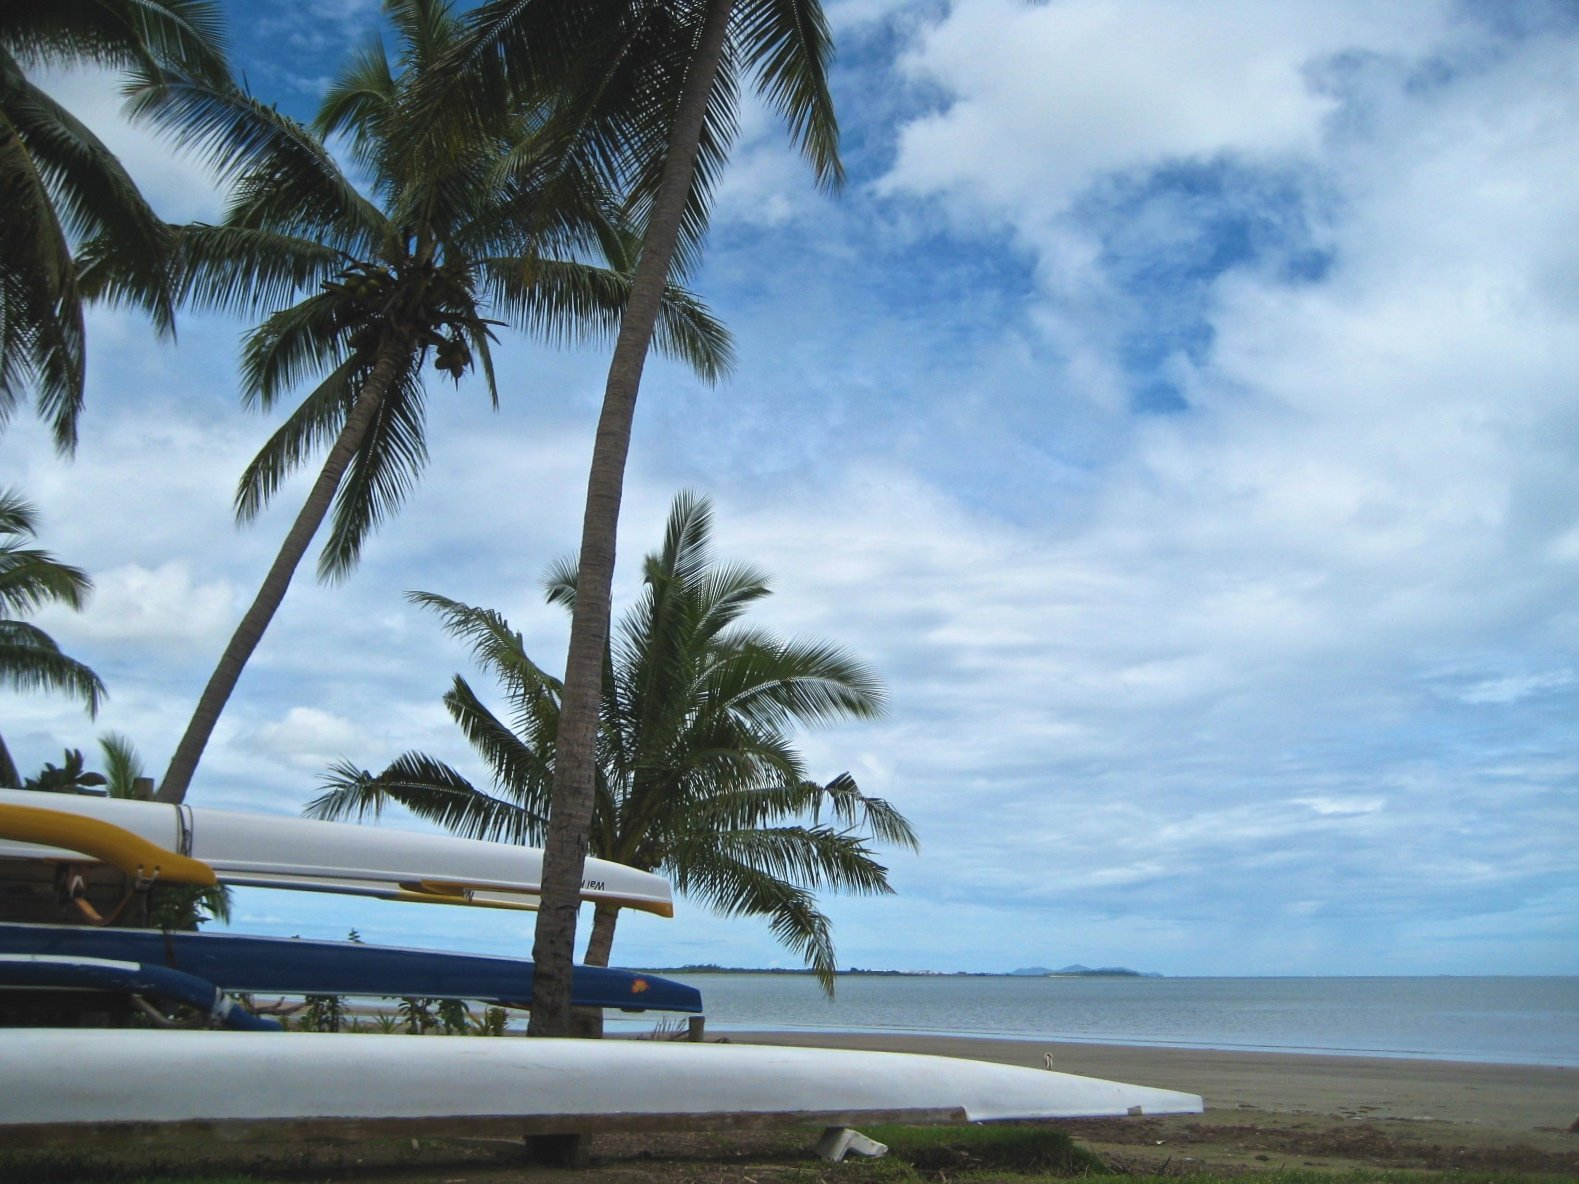 Palm Trees & Canoes on Beach